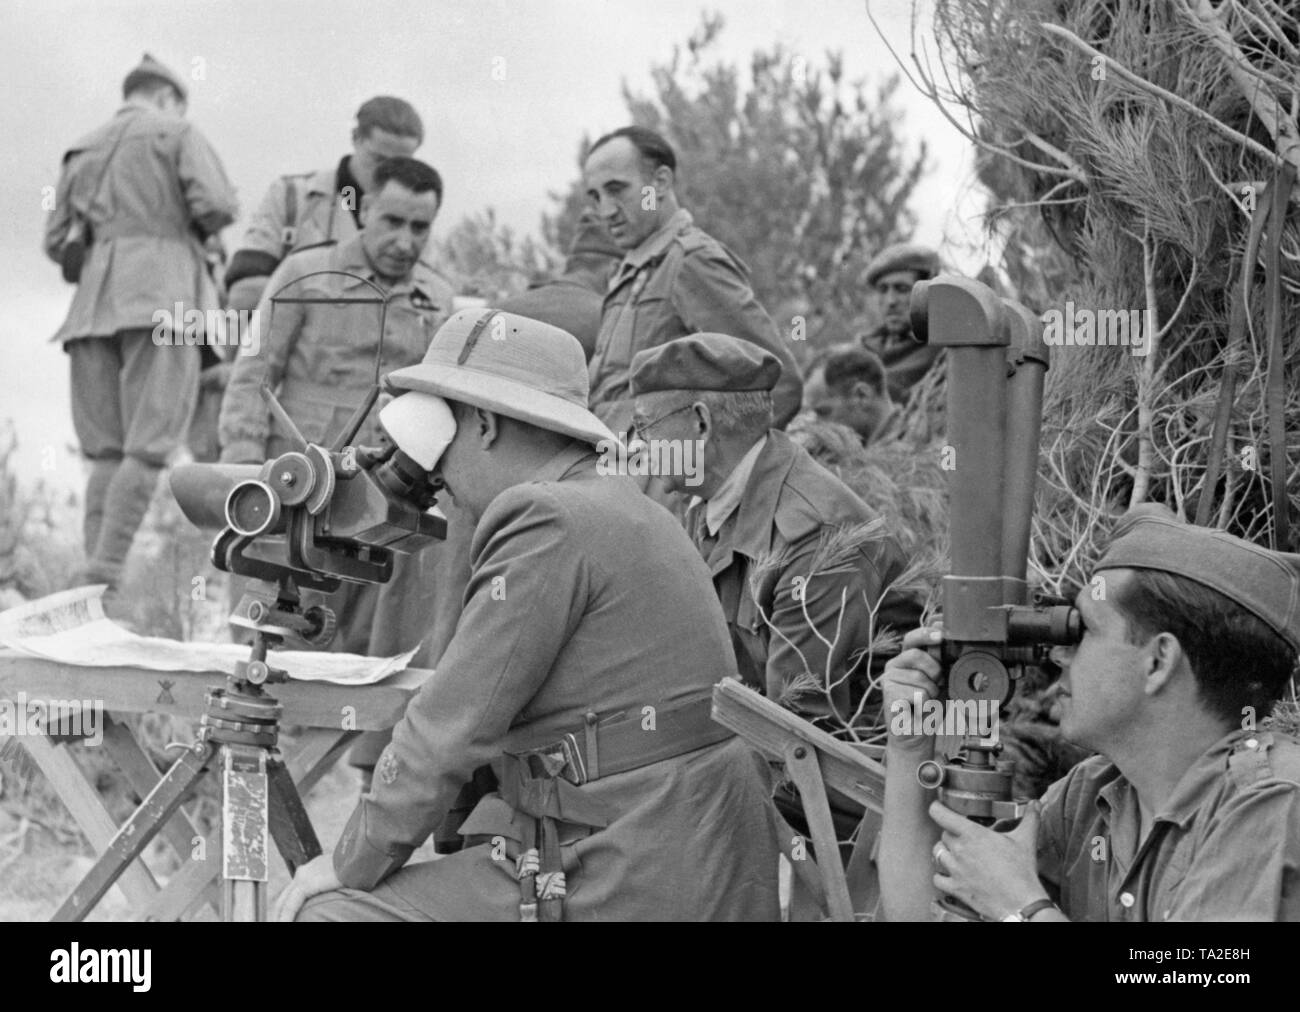 Photo of Generalissimo Francisco Franco (in the front with a topee, looking through a German headlight 35, Flakglas 10x80) together with General Emilio Mola Vidal (behind, with a beret and field tunic) during the visit of officers of a division of the Condor Legion in the Spanish Civil War before June, 1937. A legionary is looking through a scissors telescope. Behind the generals, a card table and staff officers. - Stock Image